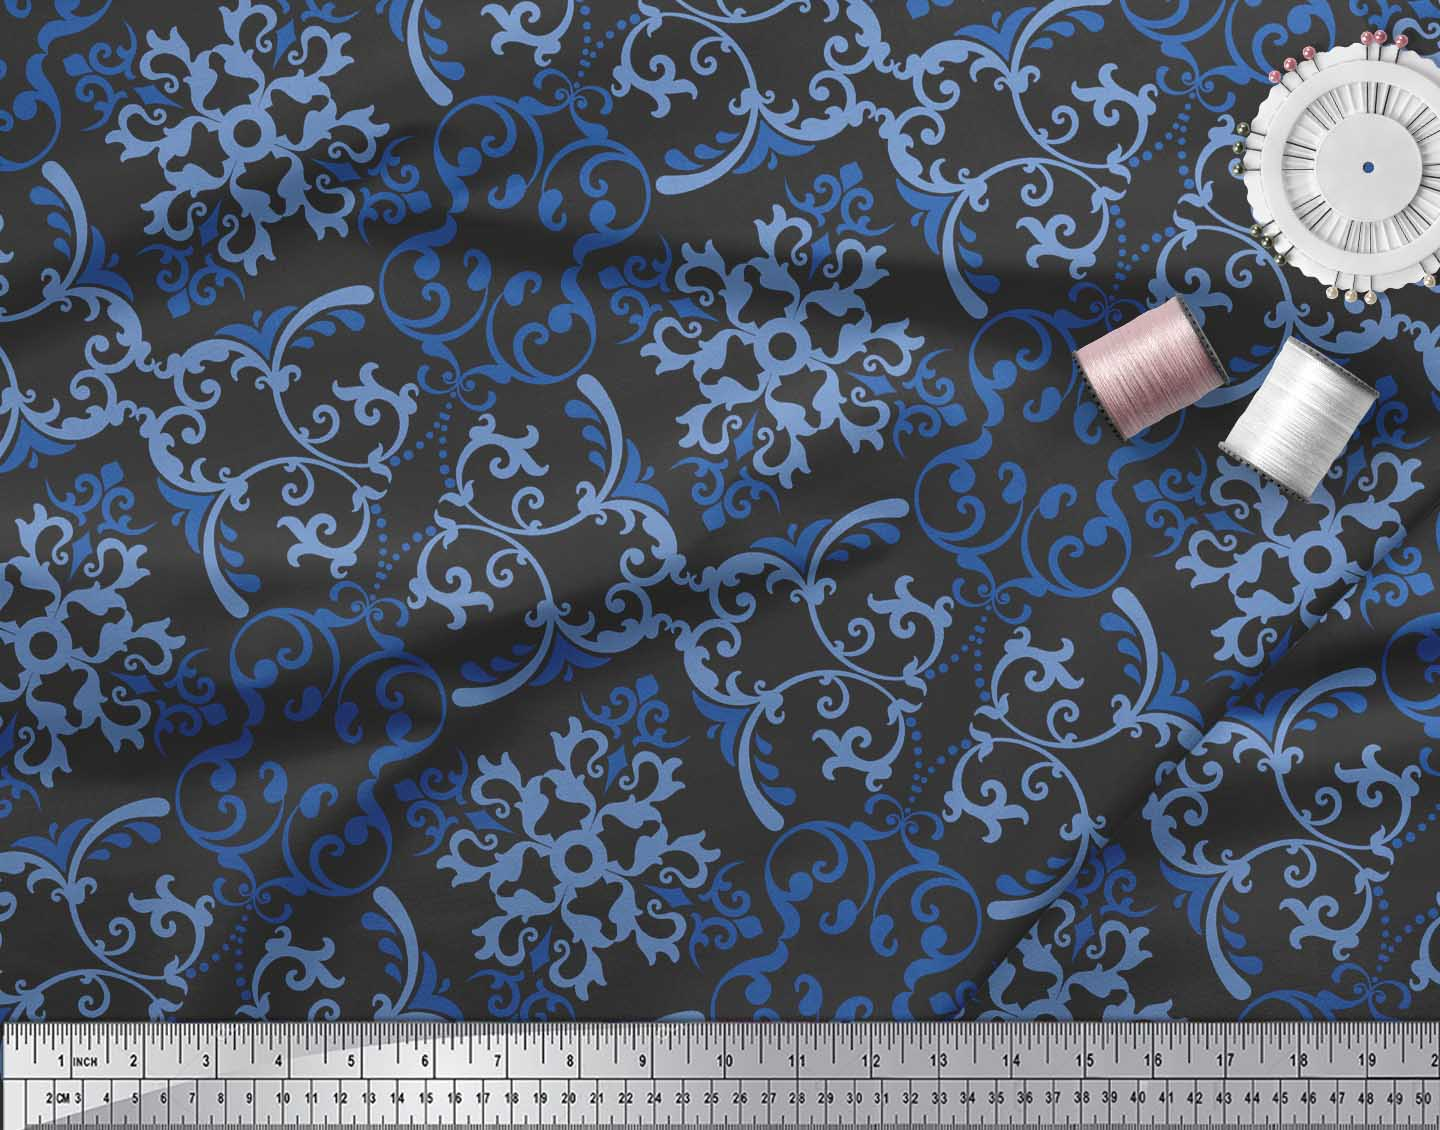 Soimoi-Black-Cotton-Poplin-Fabric-Vector-Design-Damask-Fabric-Prints-ZAz thumbnail 4